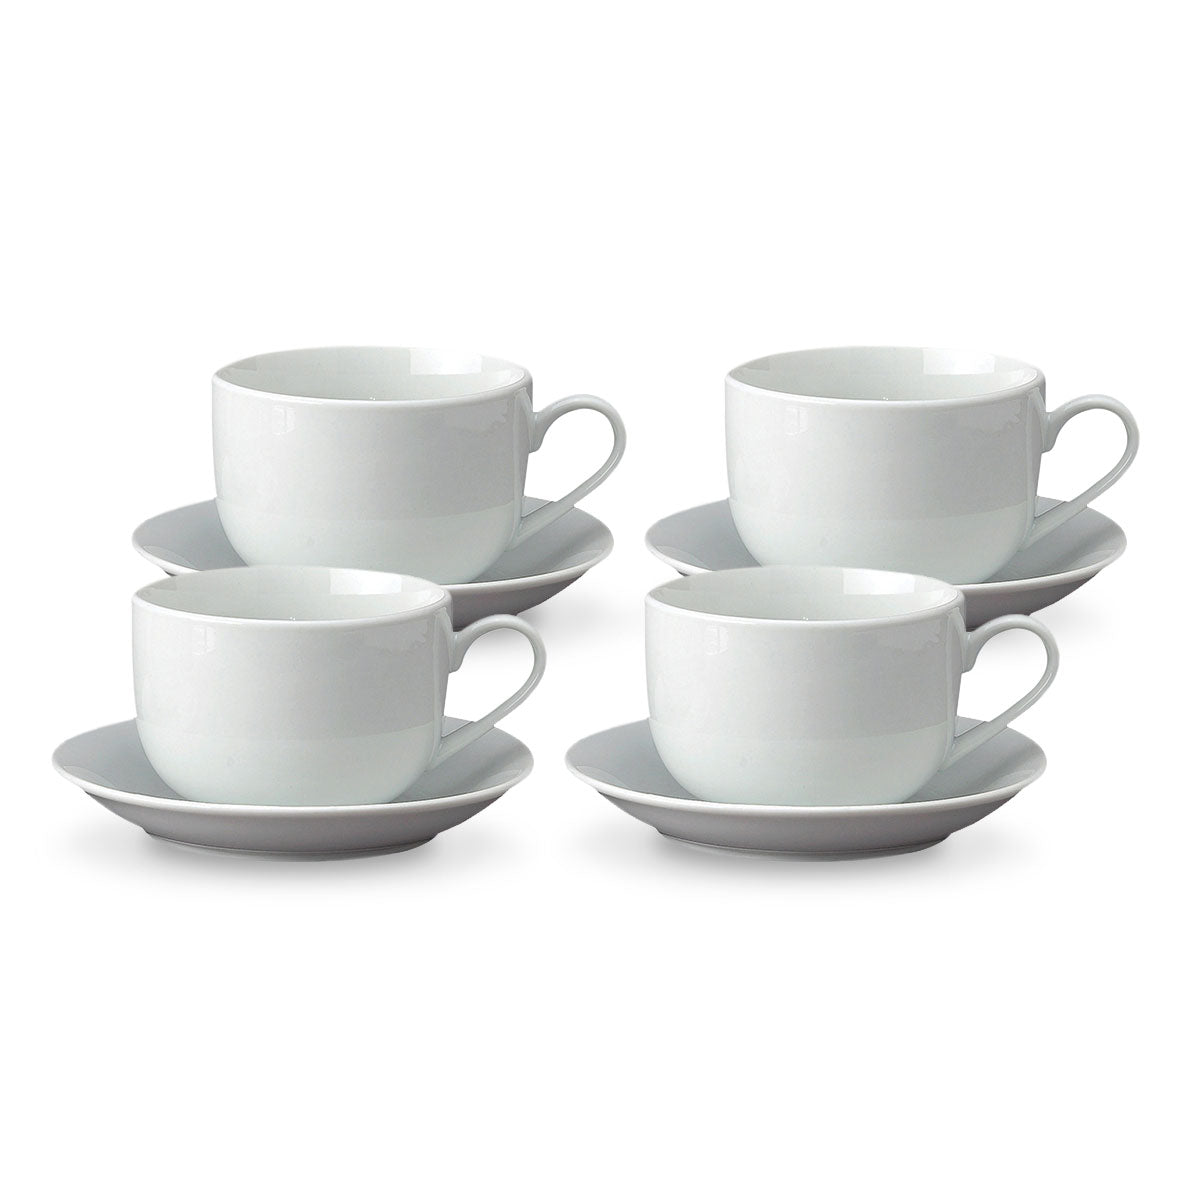 Set of 4 Latte Cups and Saucers